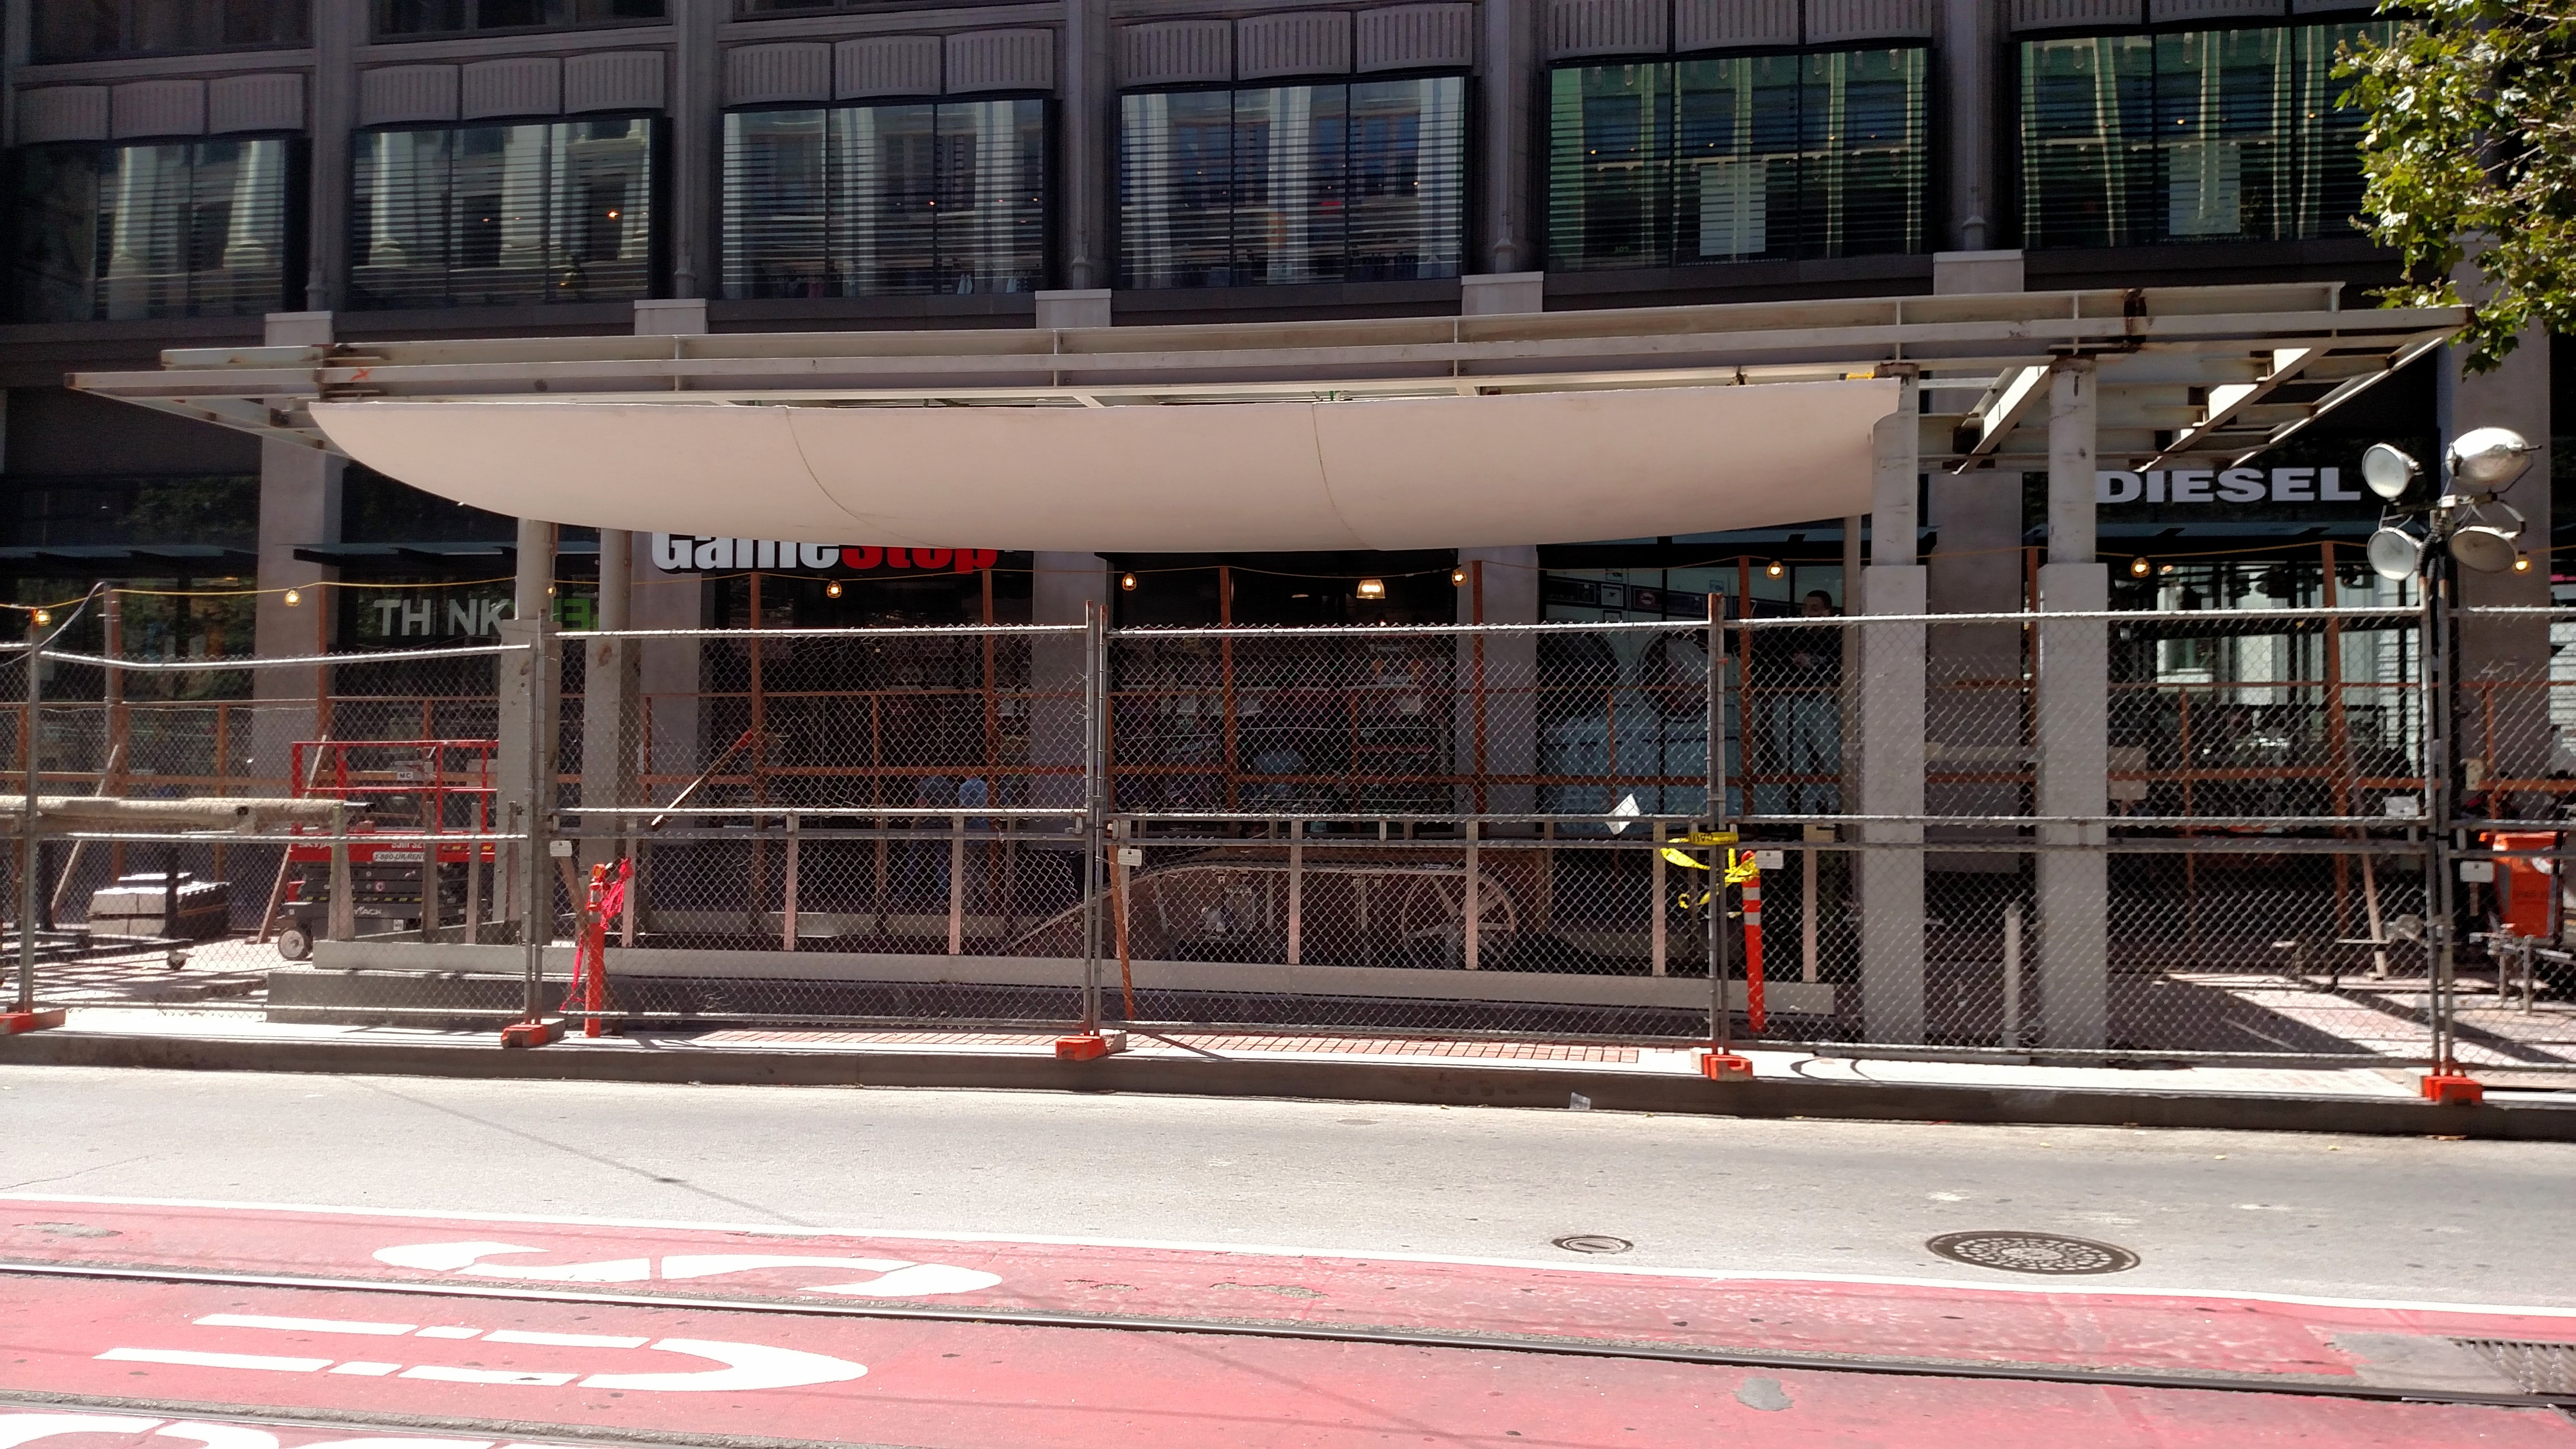 FileCanopy construction at Powell station August 2018.jpg & File:Canopy construction at Powell station August 2018.jpg ...